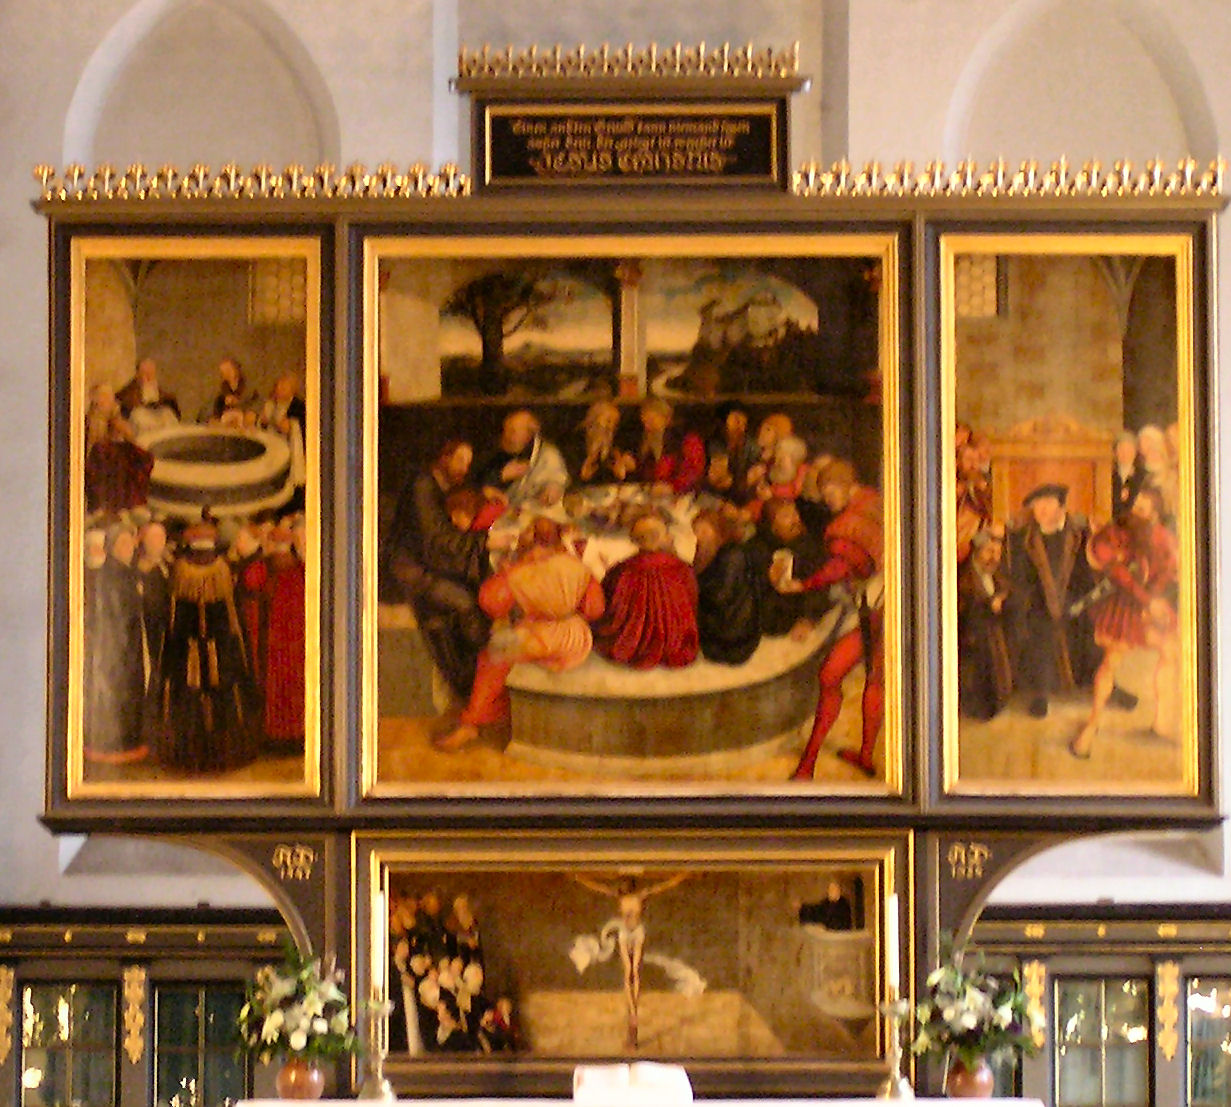 reformation art Images of art: the reformation era all images were taken from the web gallery of art hieronymus bosch (1450-1516) biography the seven deadly sins c 1480 panel, 120.